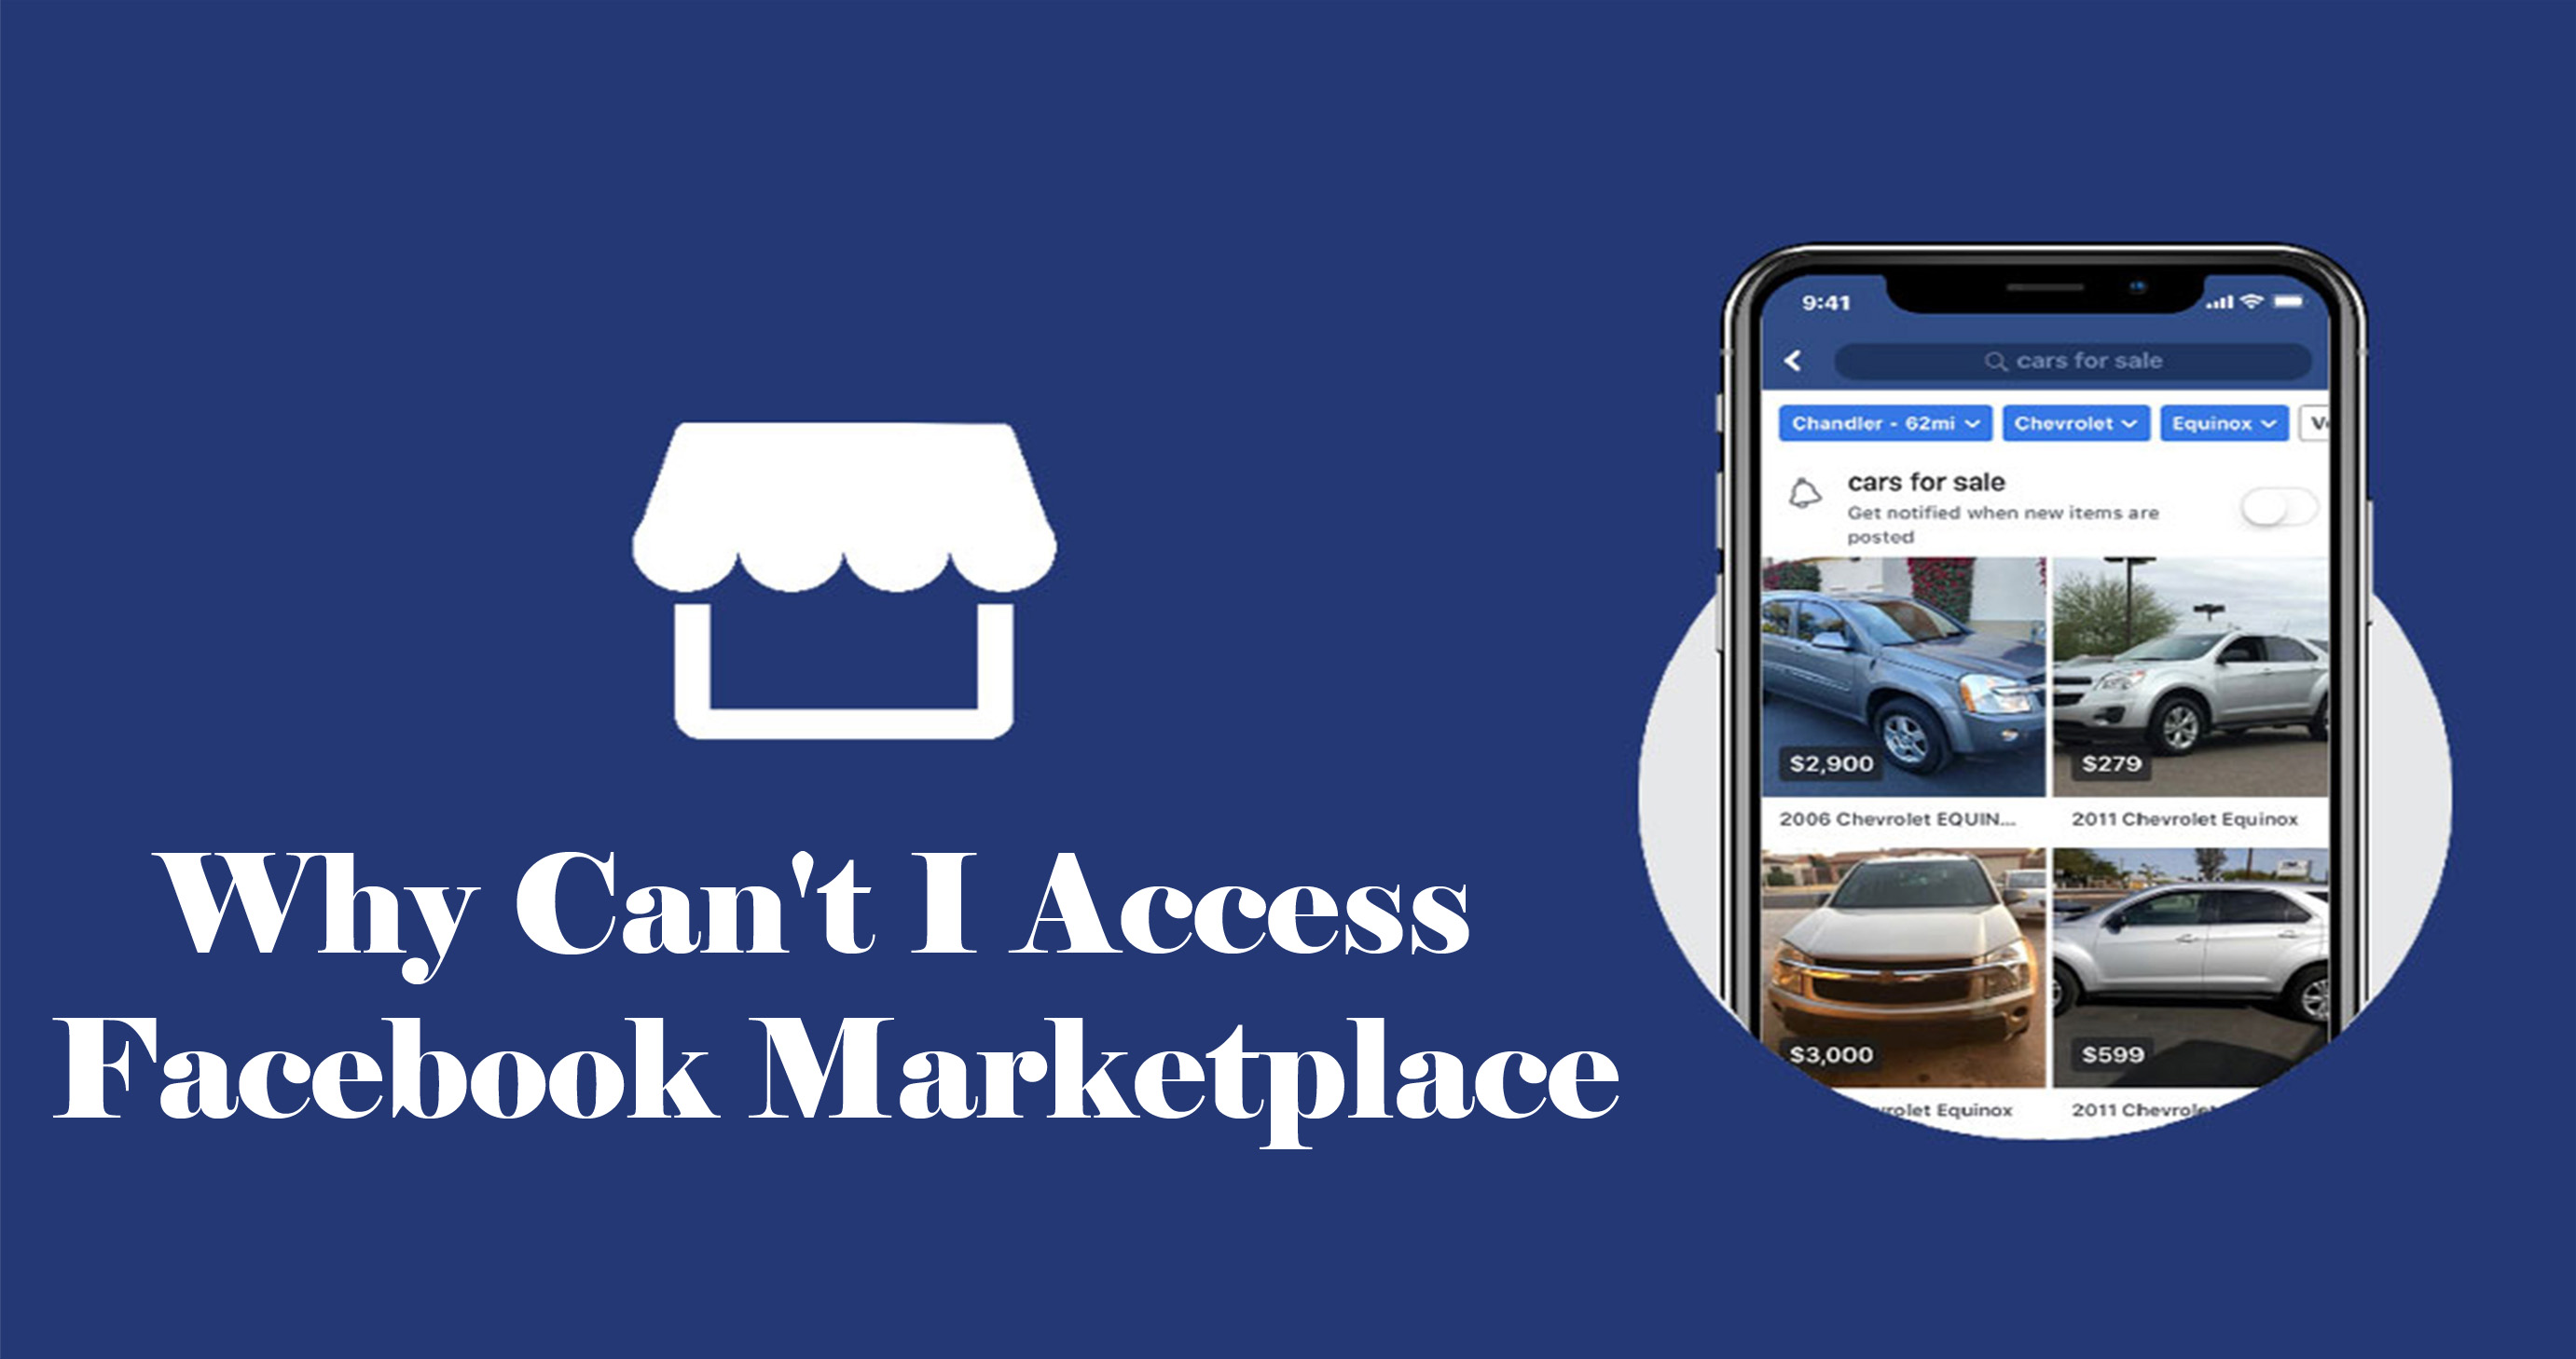 Why Can't I Access Facebook Marketplace – Facebook Buy and Sell